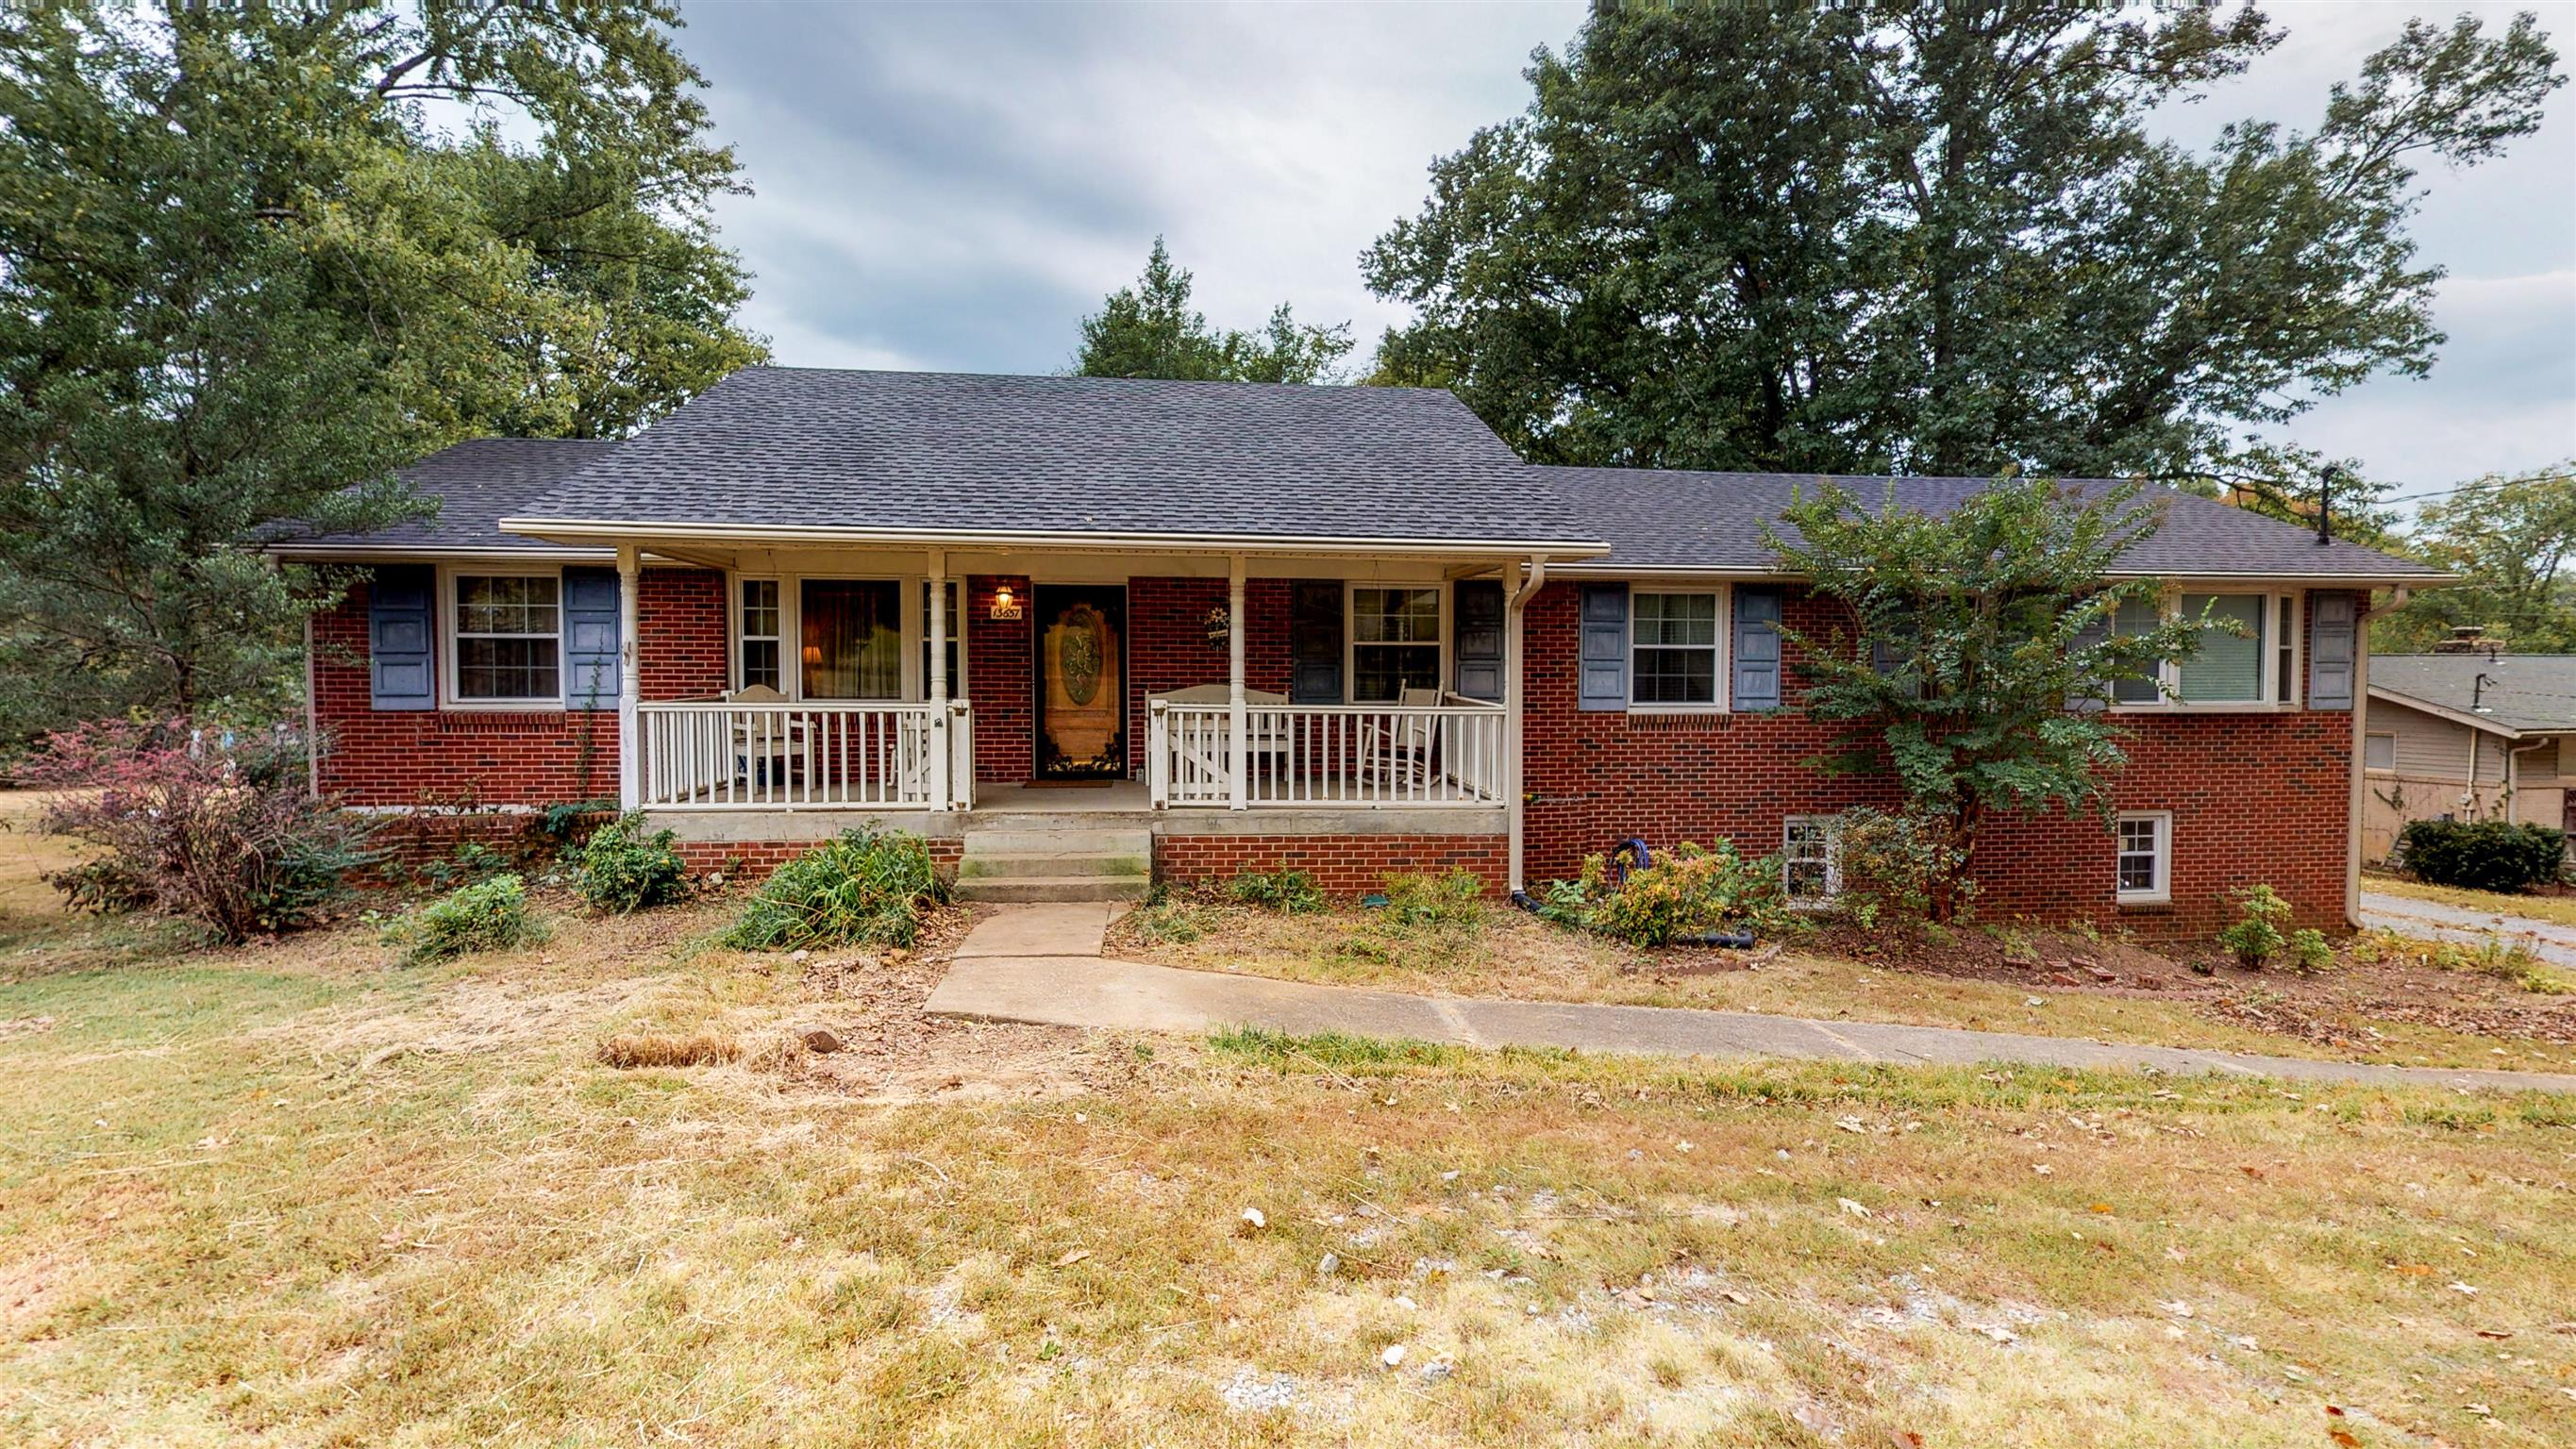 13657 Old Hickory Blvd, Antioch, TN 37013 - Antioch, TN real estate listing